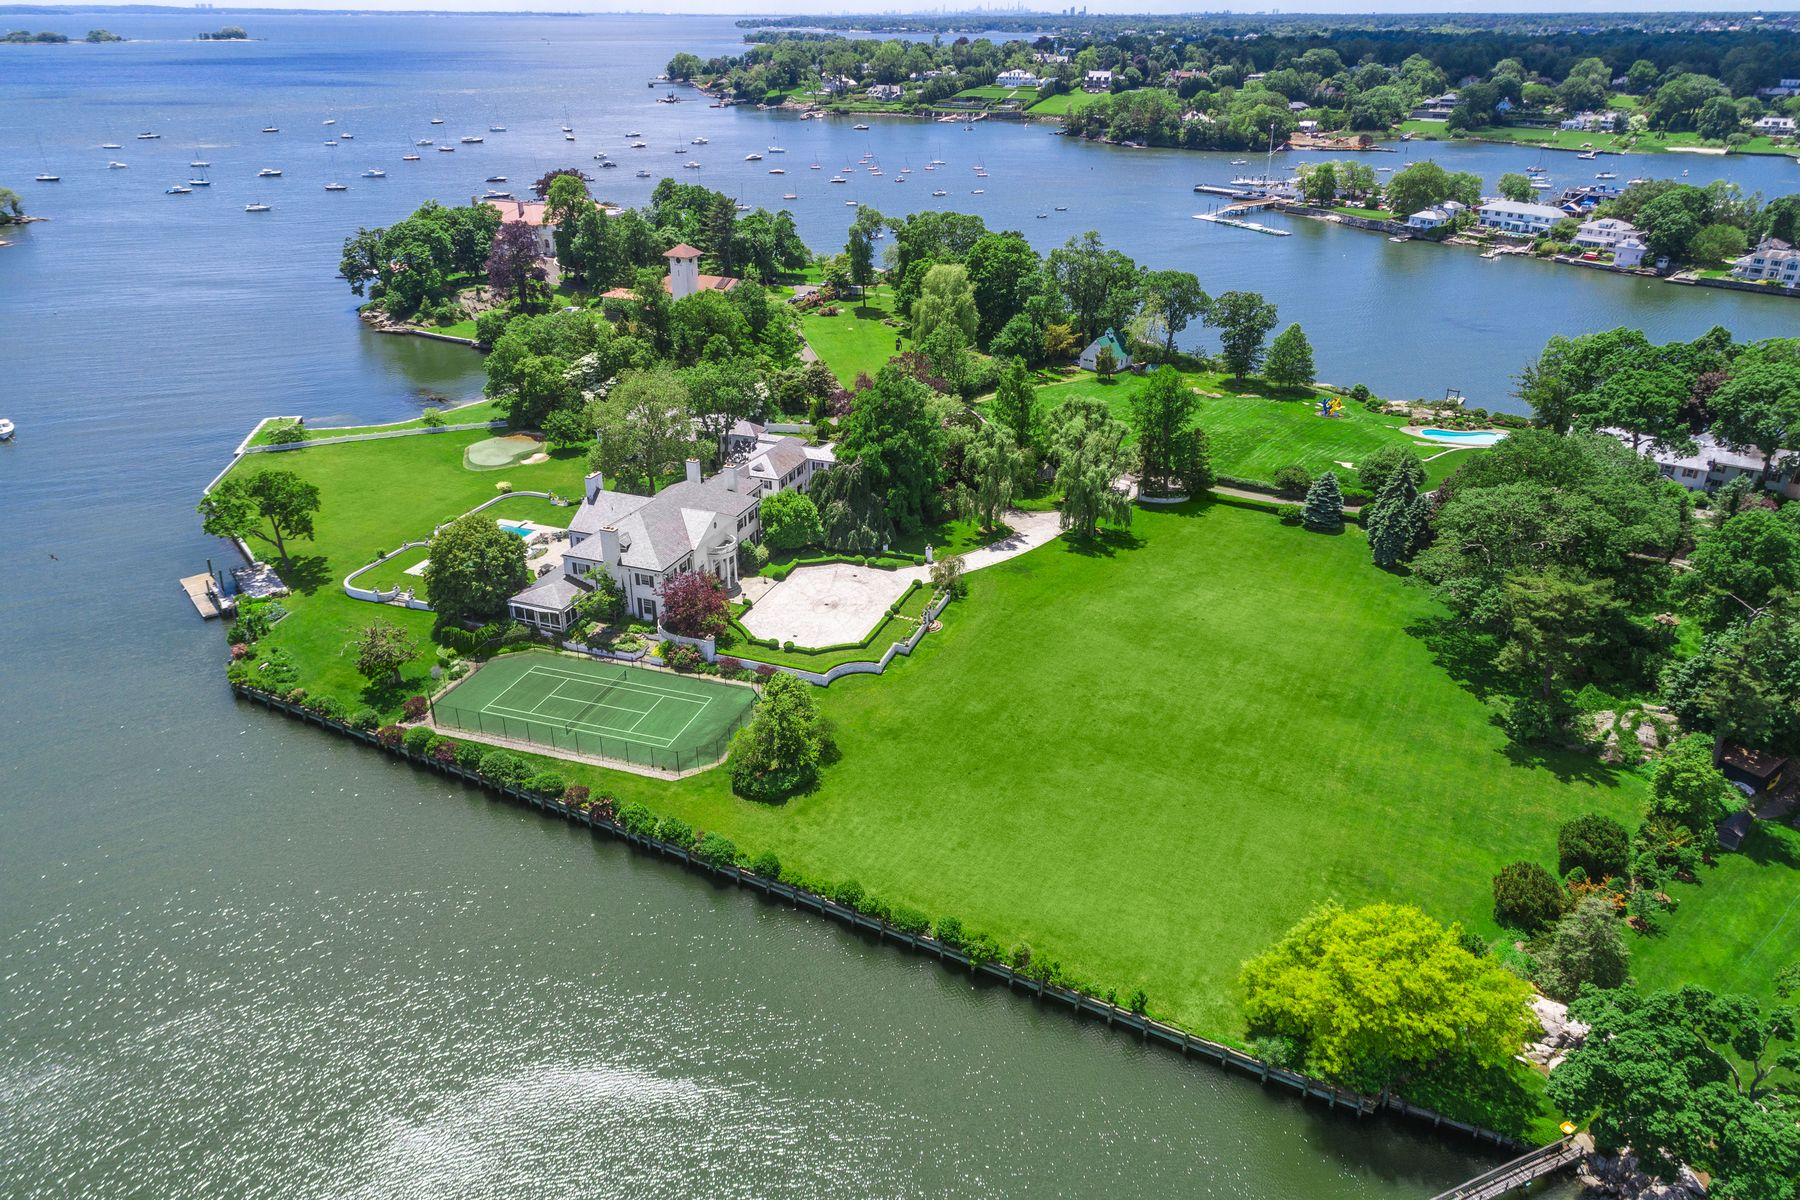 Single Family Homes for Sale at 21 Vista Drive Greenwich, Connecticut 06830 United States